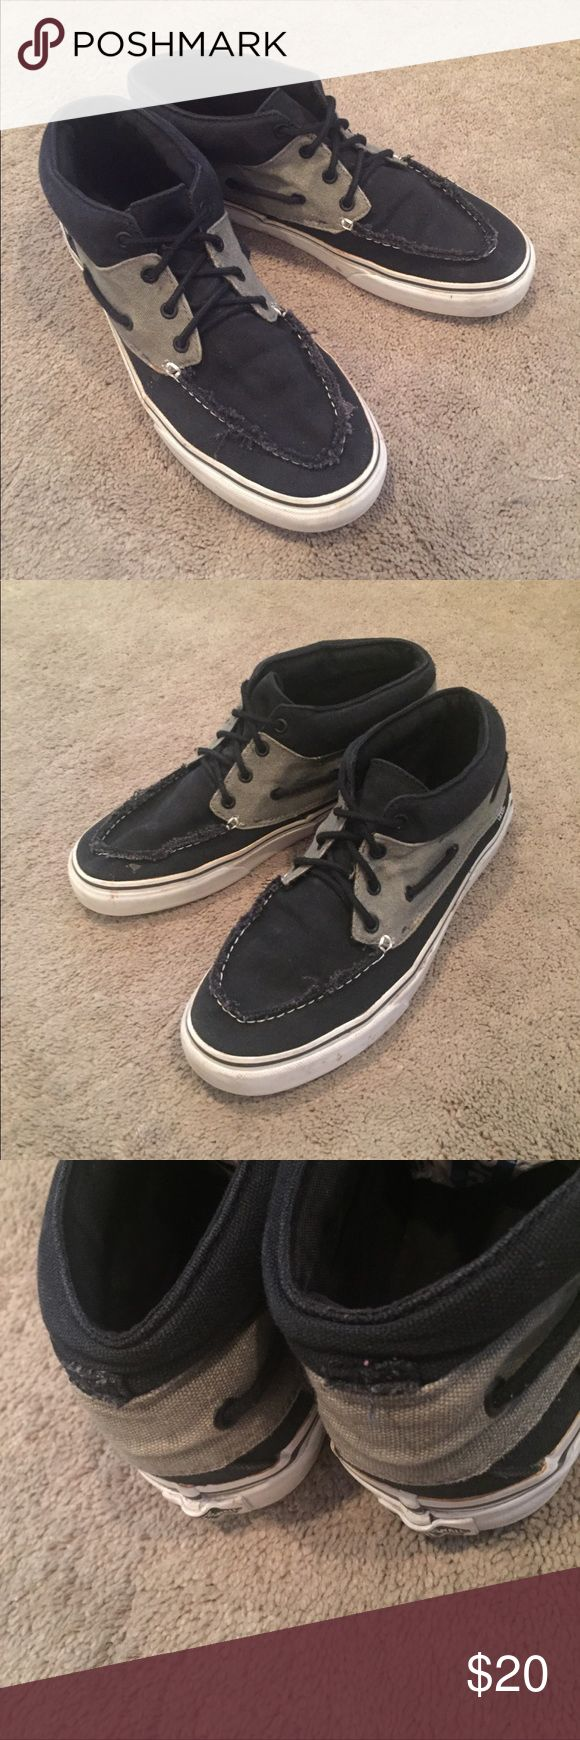 Vans boat shoes mid Good condition! I cut the heel tags off. Vans Shoes Boat Shoes